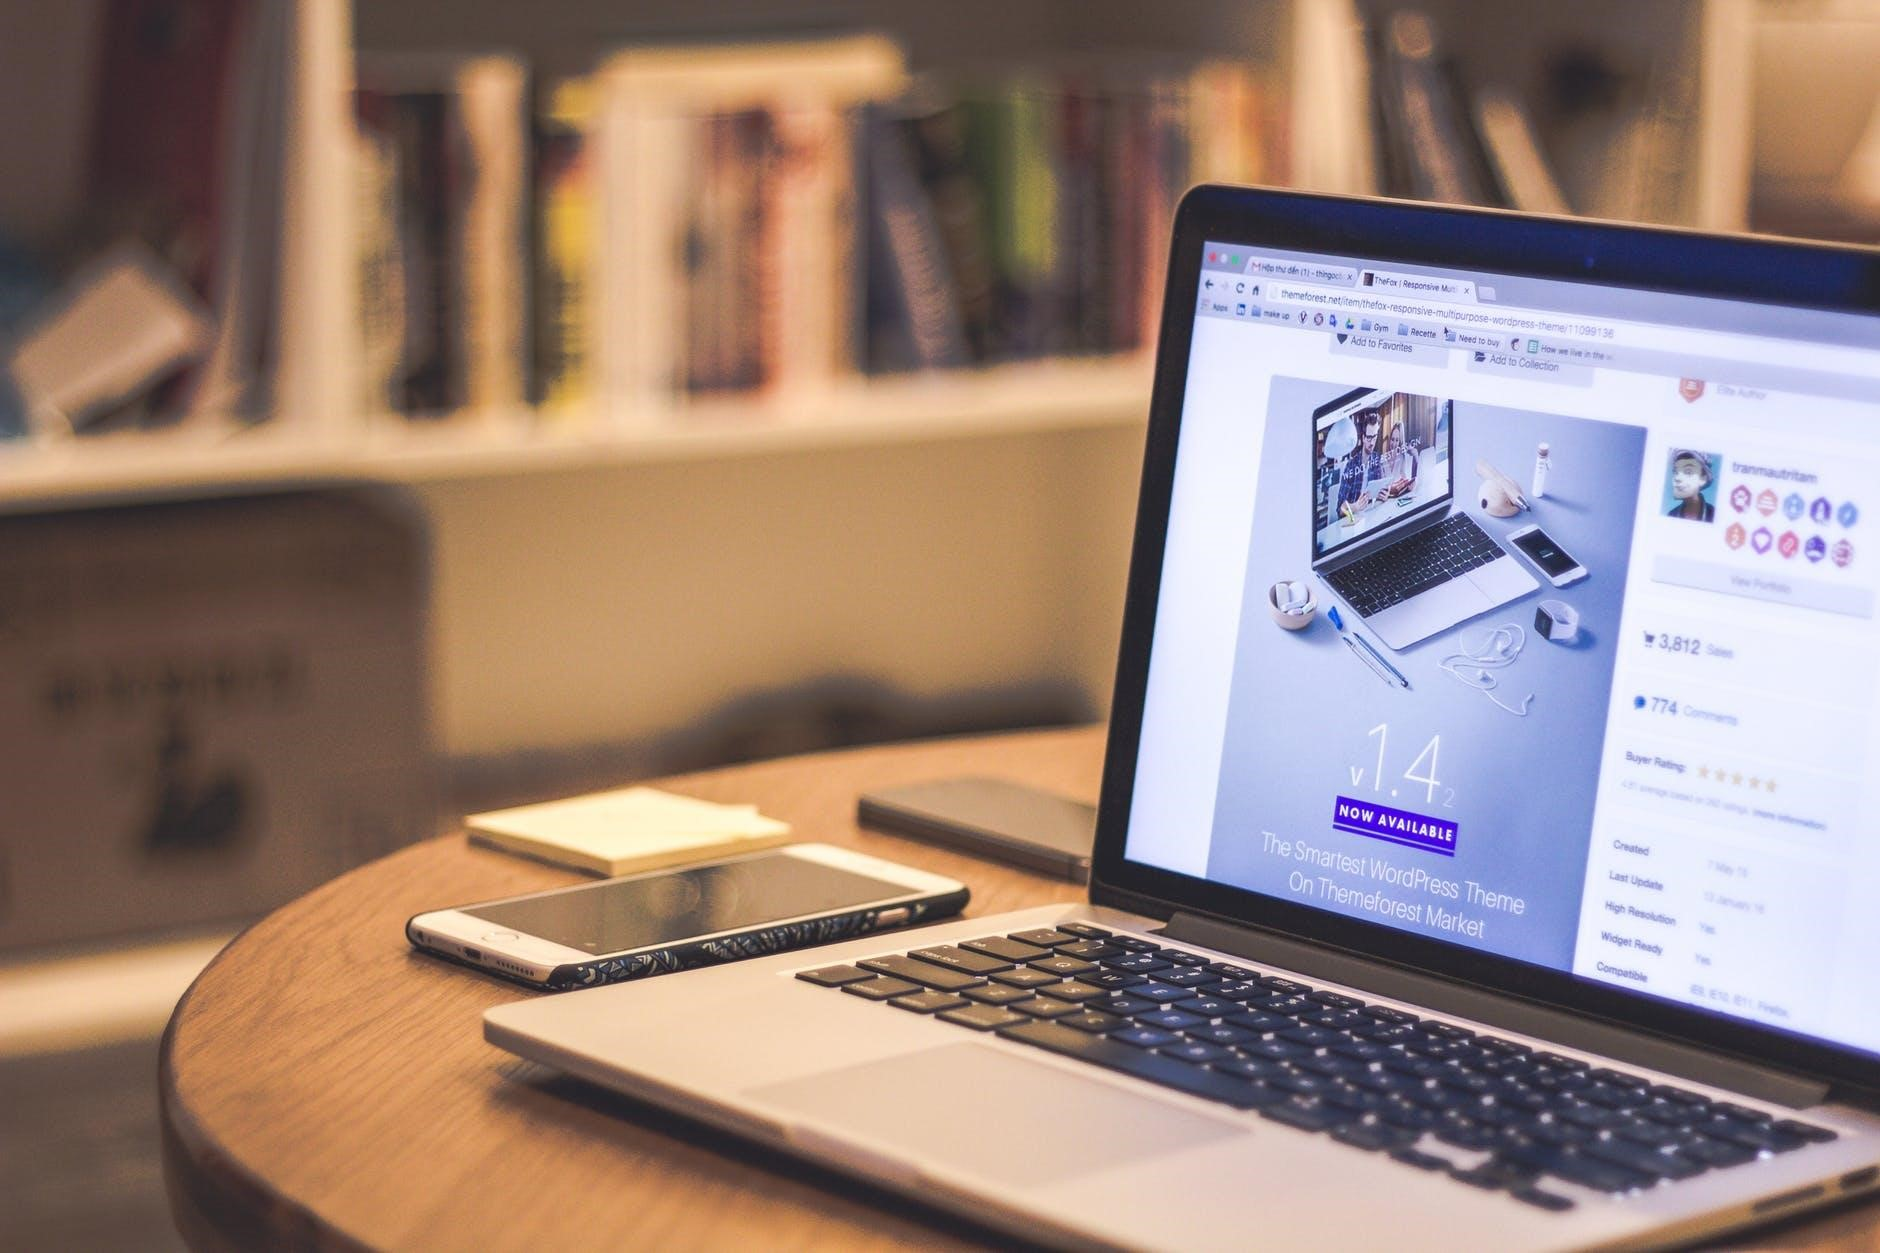 Online Business Ideas: How to Get Started and What Mistakes to Avoid